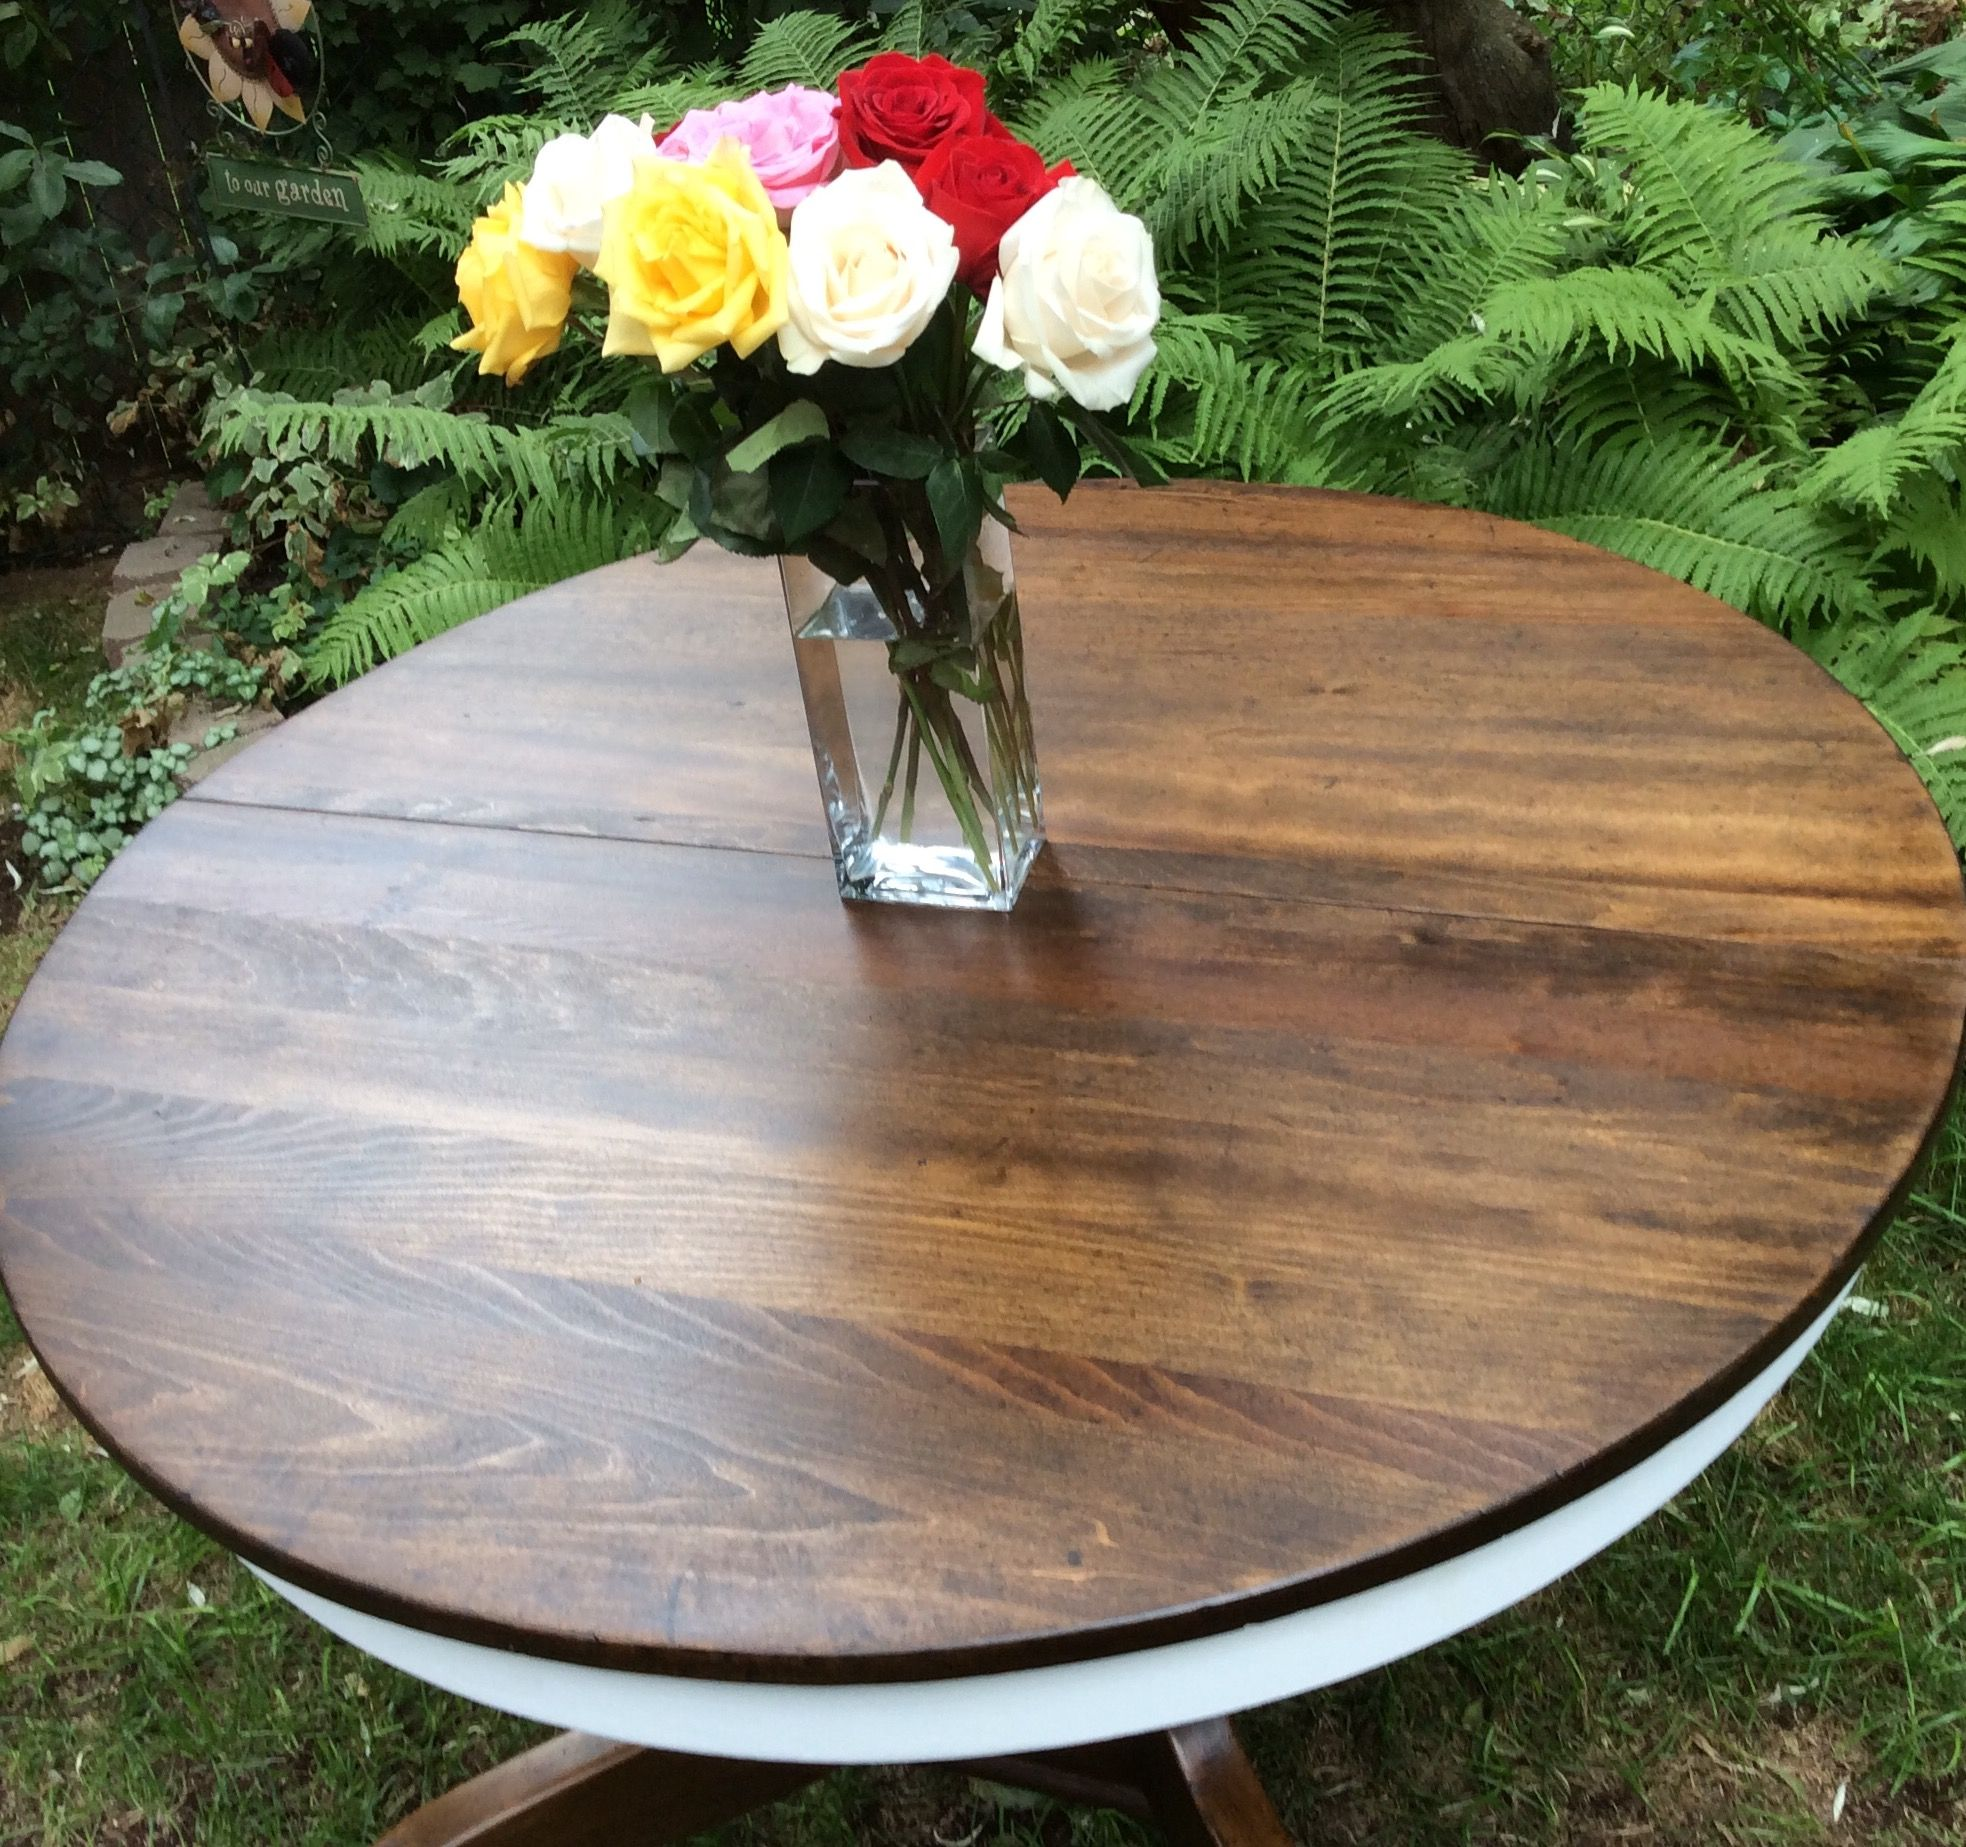 Antique oak pedestal table refinished in Annie Sloan pure white